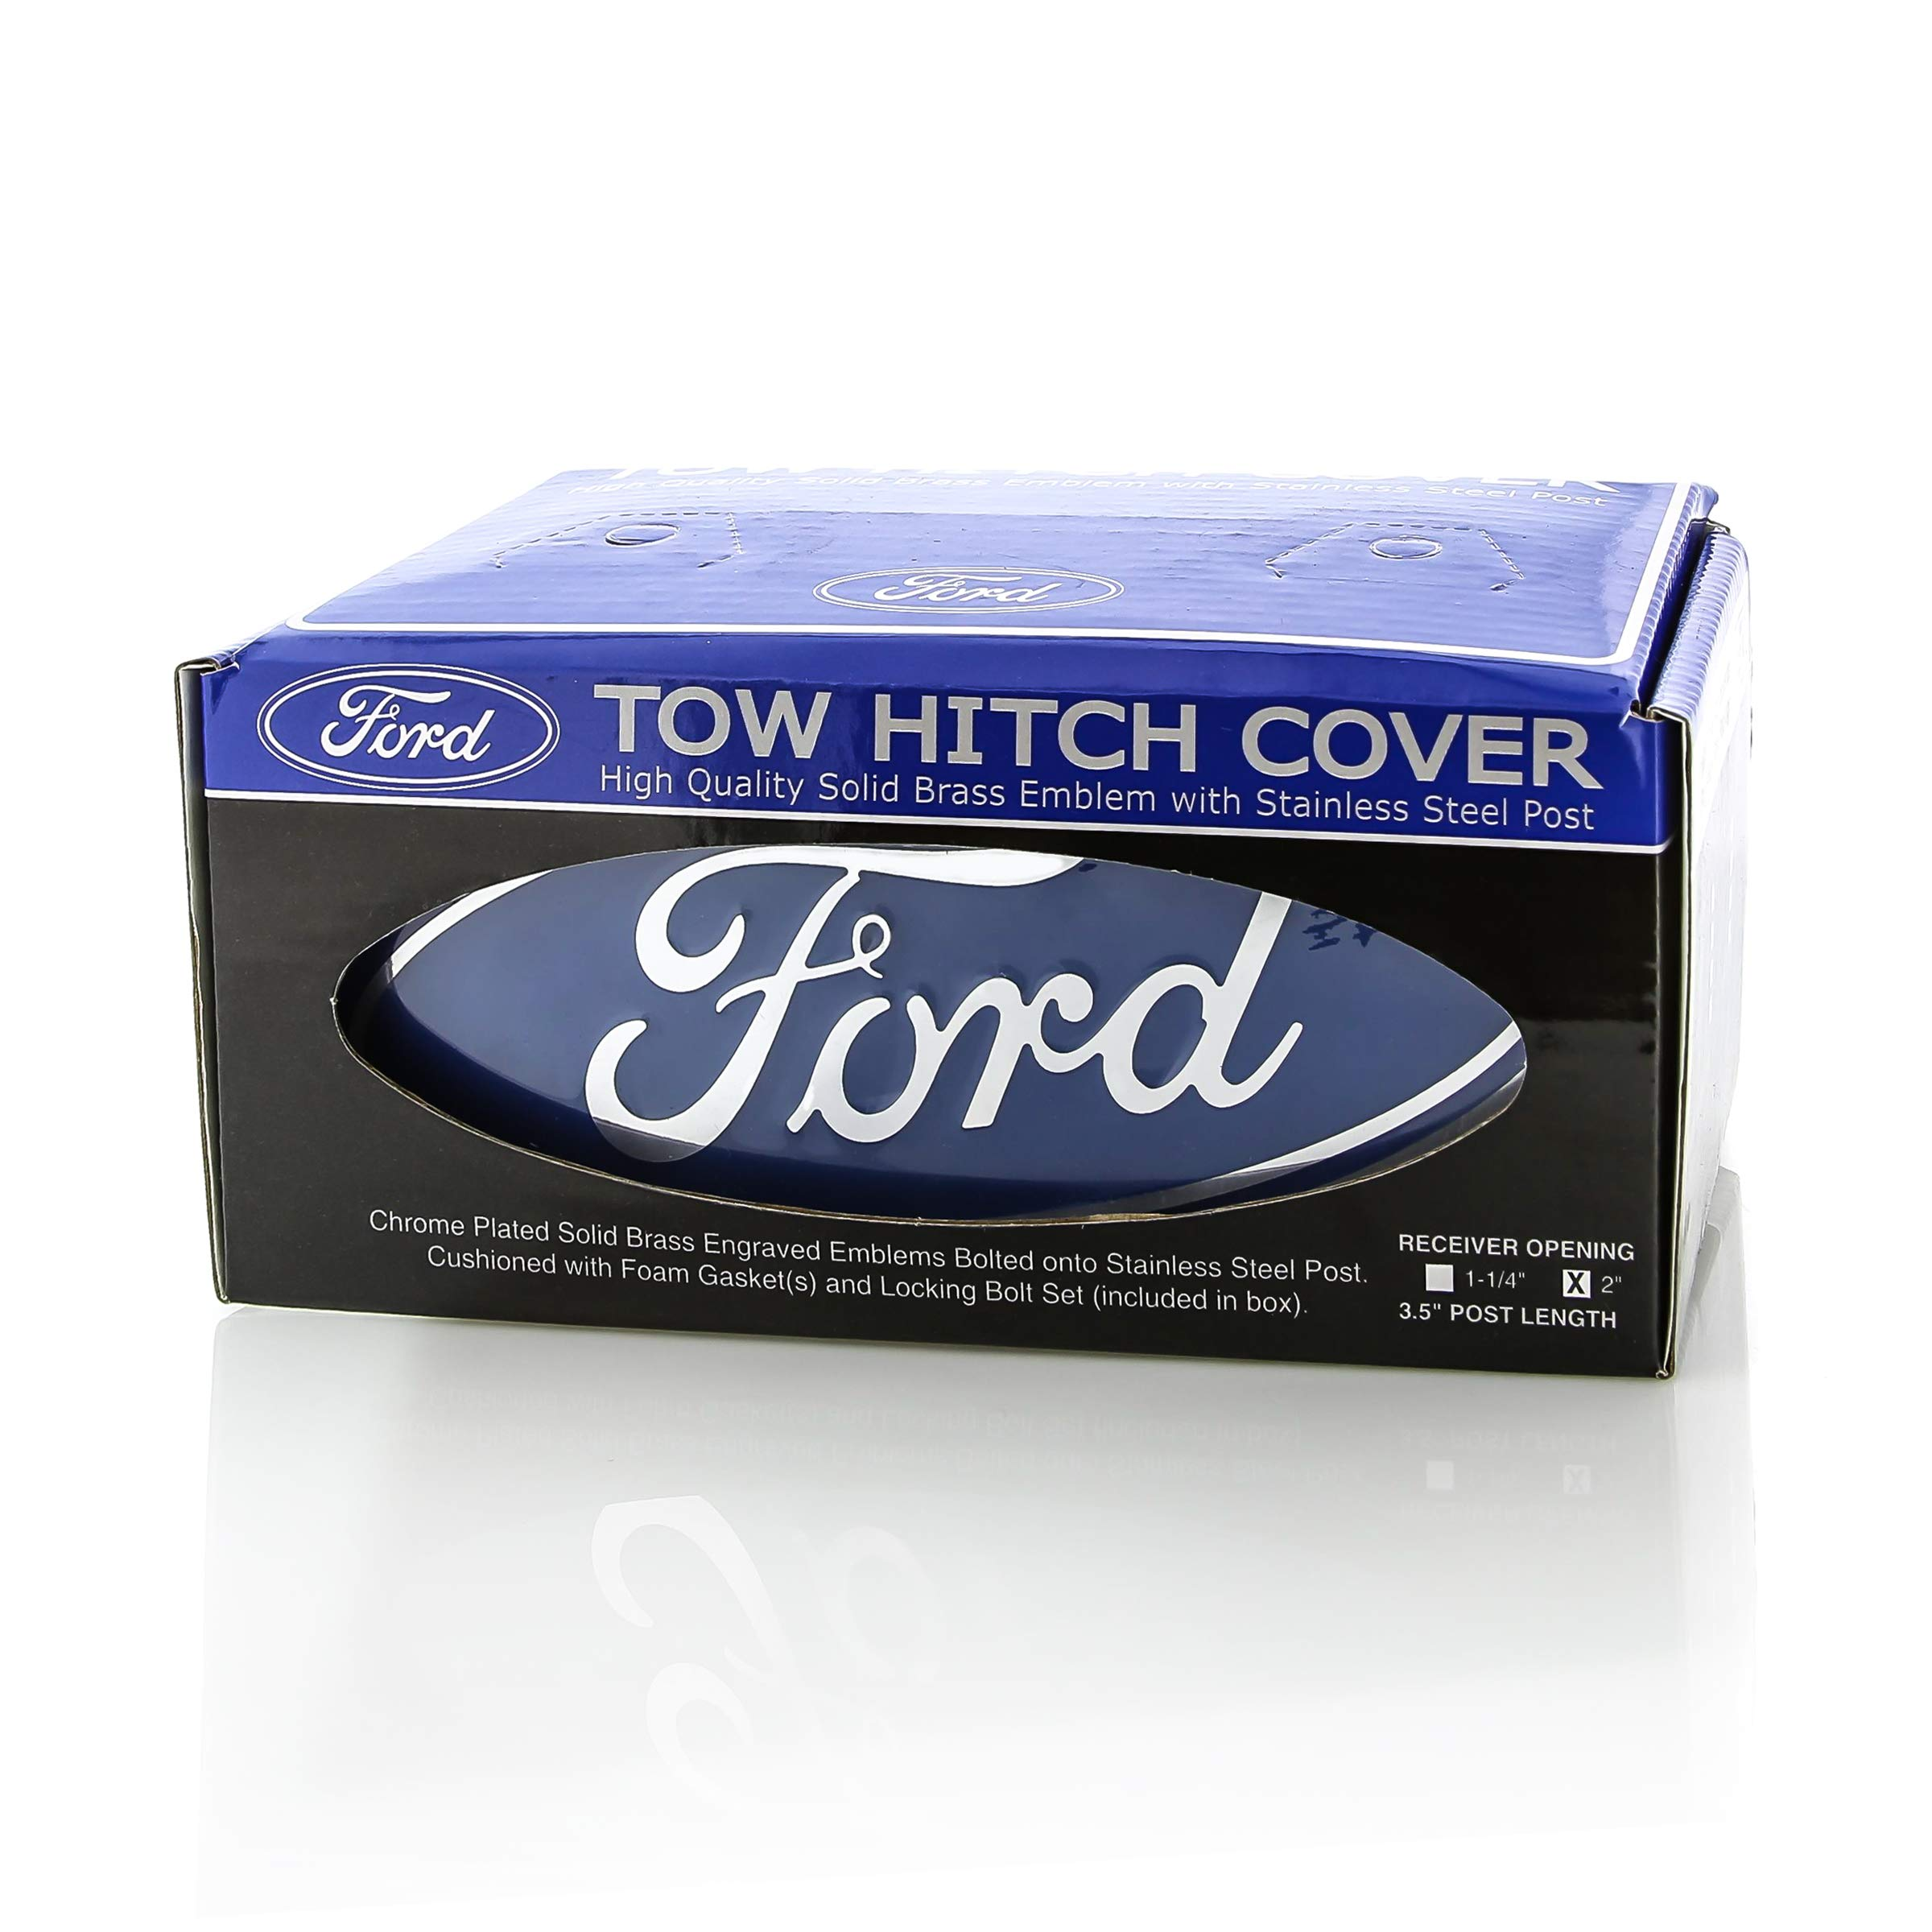 Ford Blue Logo & Corp. Block Emblem Metal Trailer Tow Hitch Cover by Ford